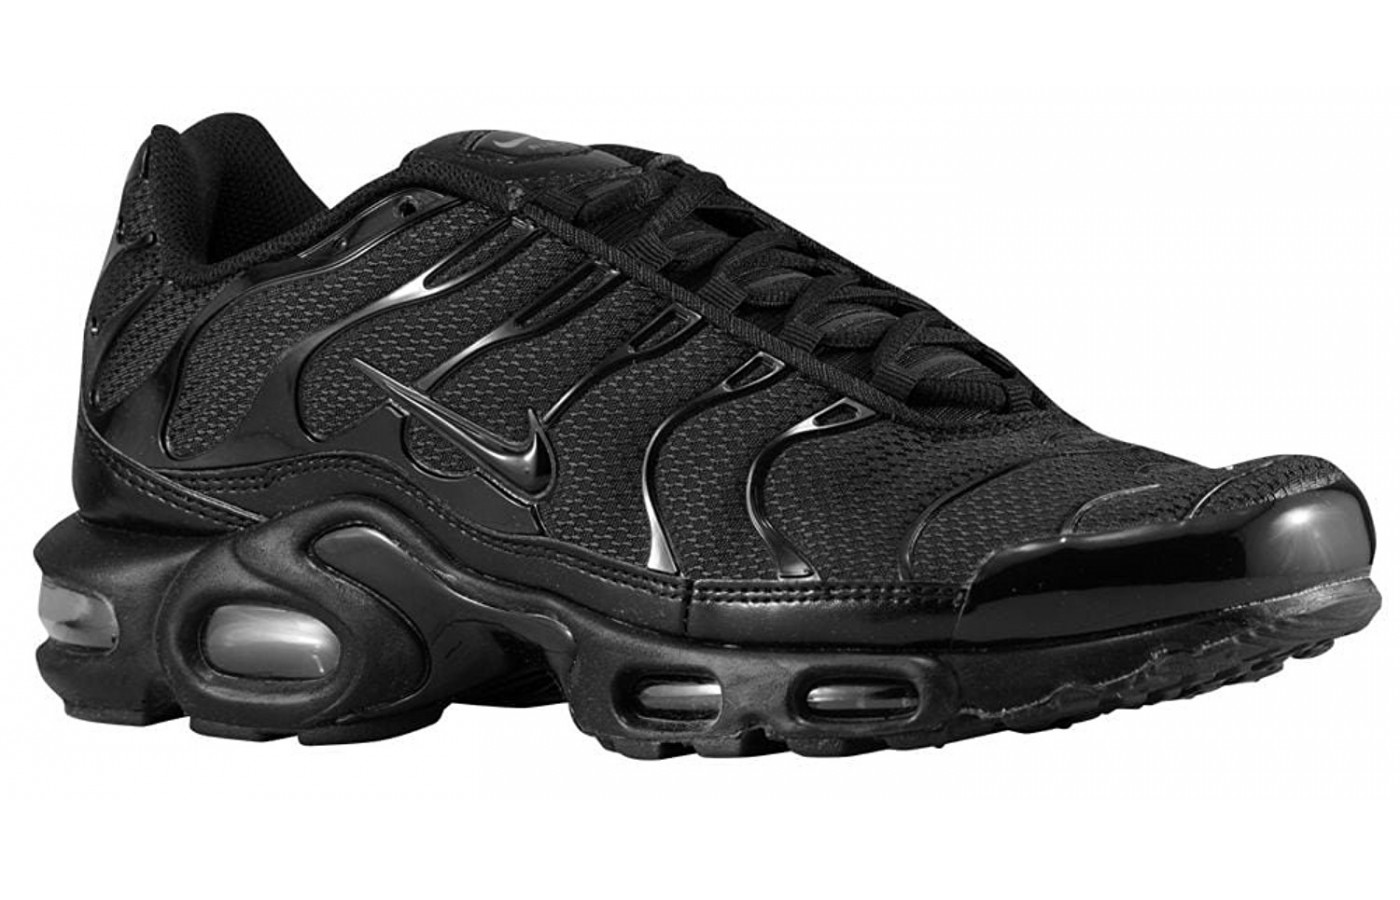 93ce330b17 Nike Air Max Plus Reviewed & Tested in 2019 | WalkJogRun